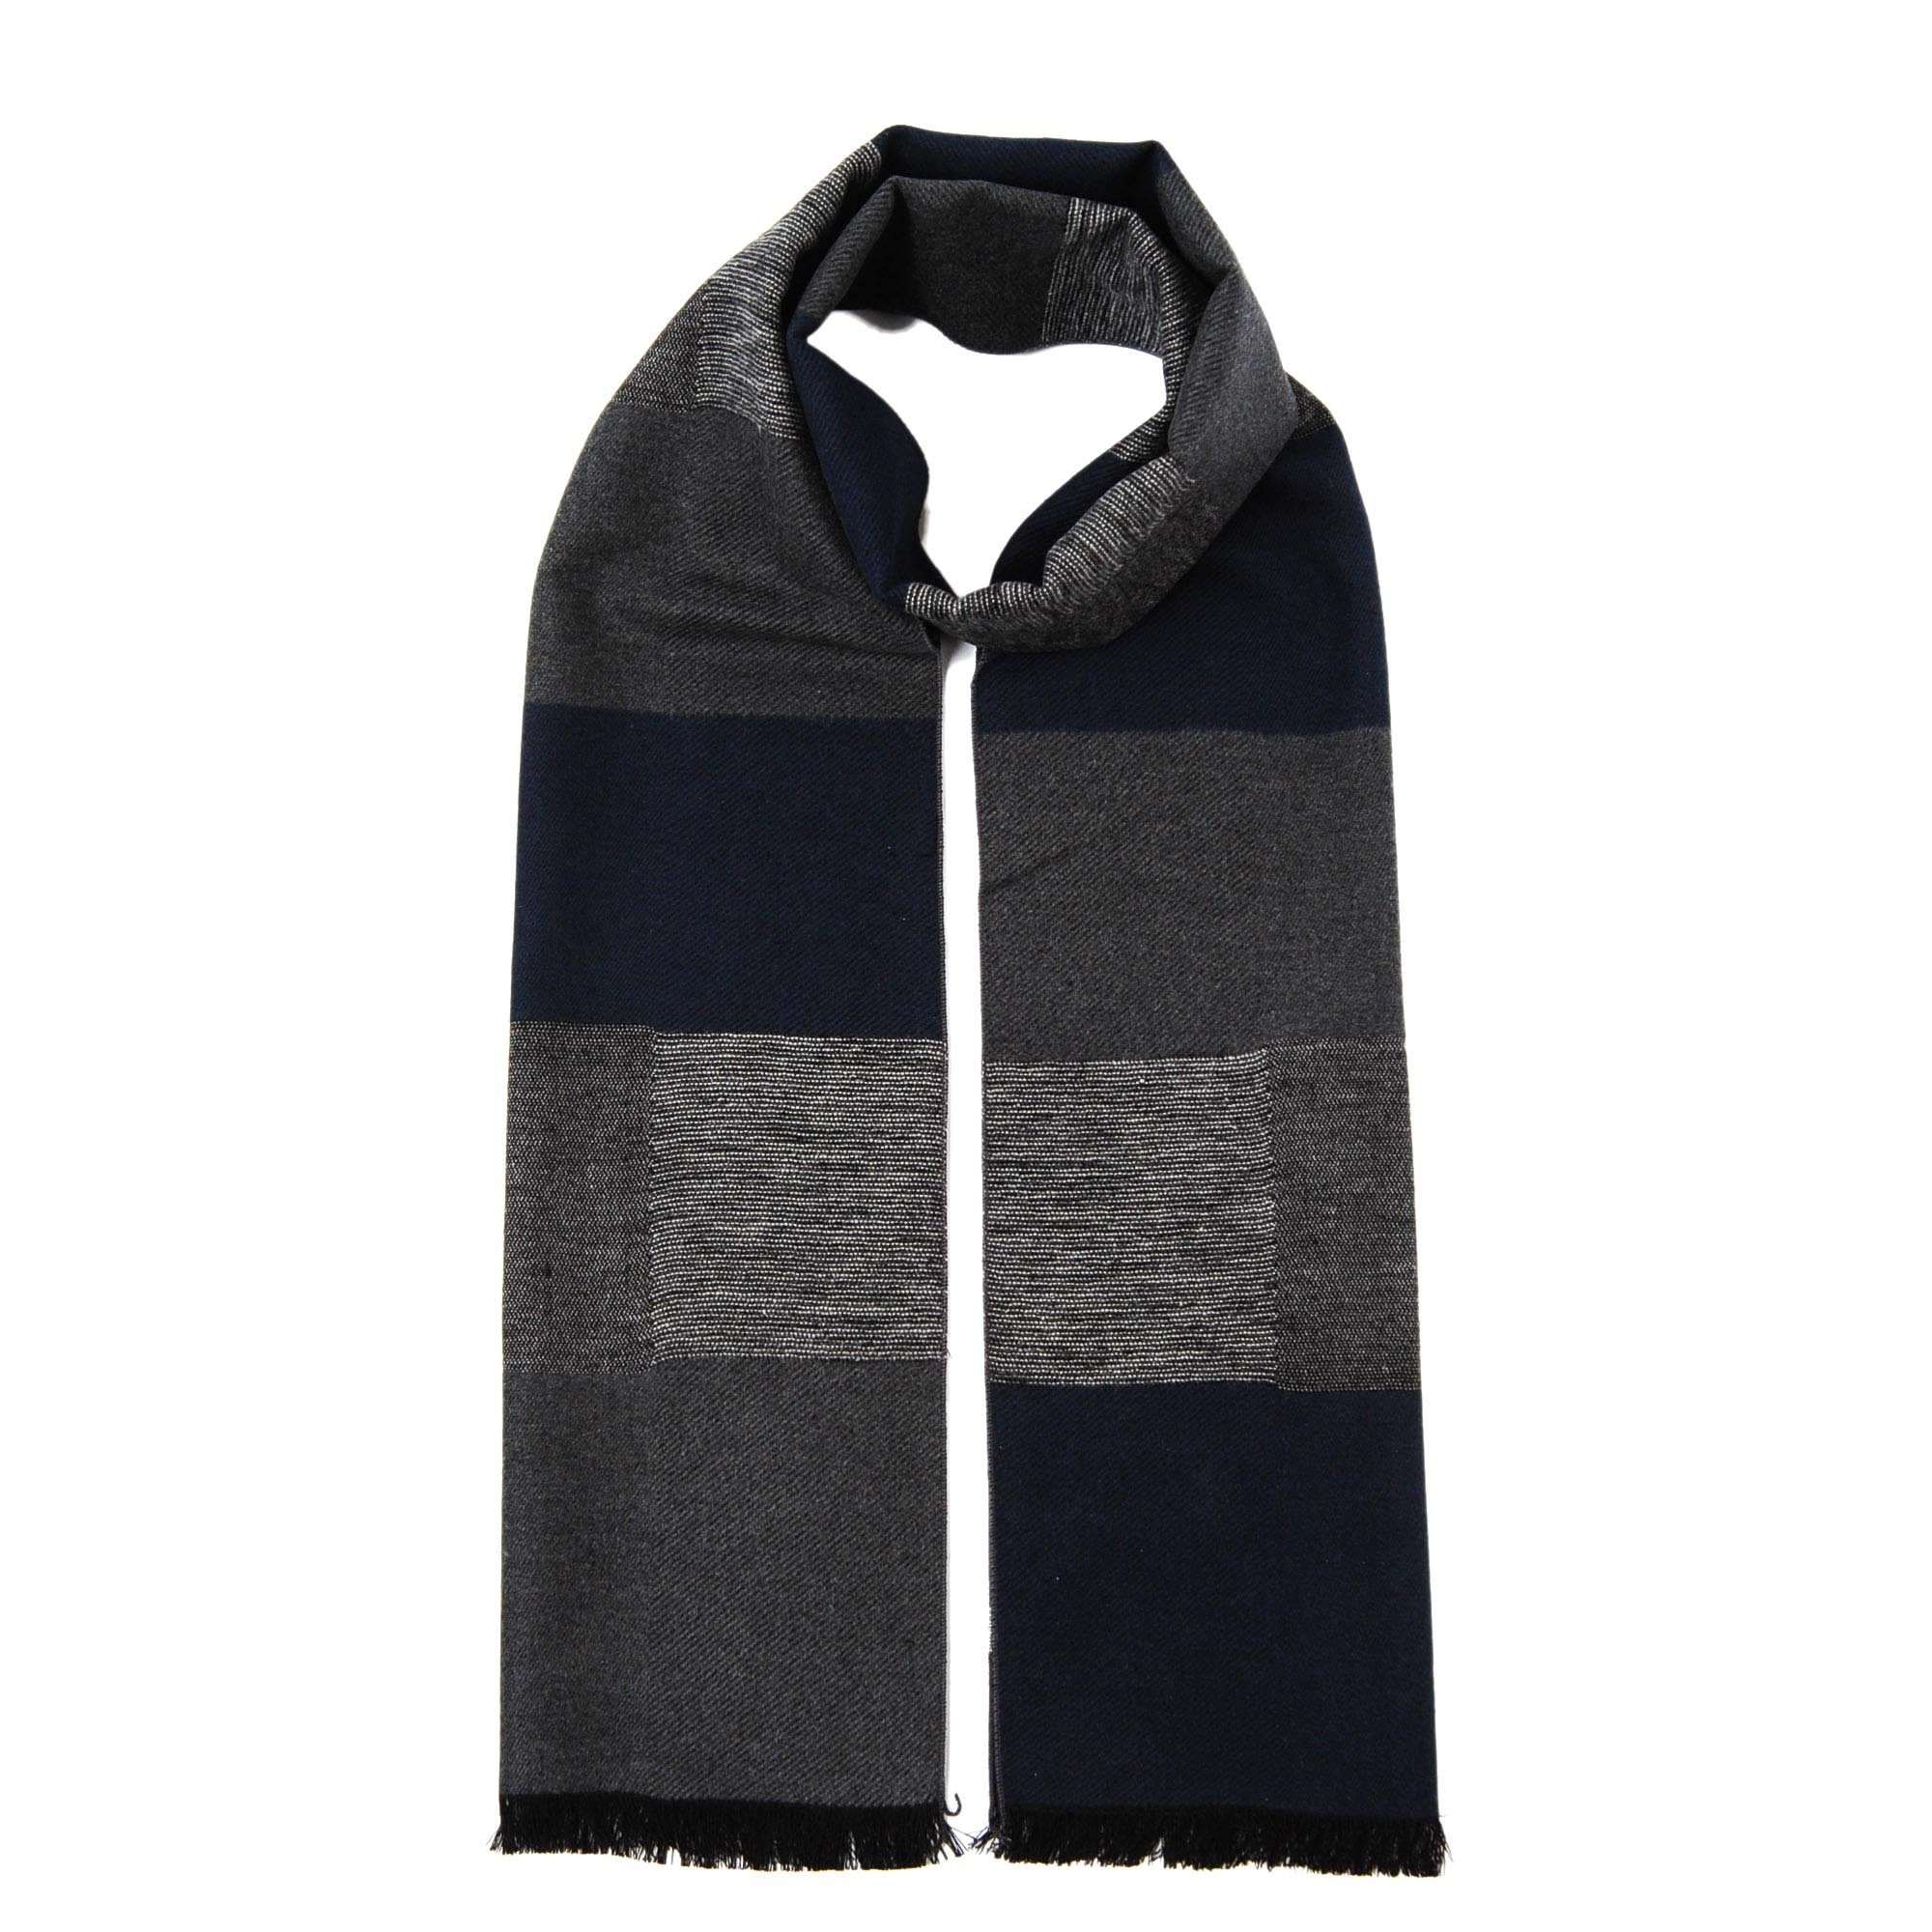 CUDDLE DREAMS Men's Silk Scarves, 100% Mulberry Silk Brushed, Luxuriously Soft (Plaid Navy Gray)